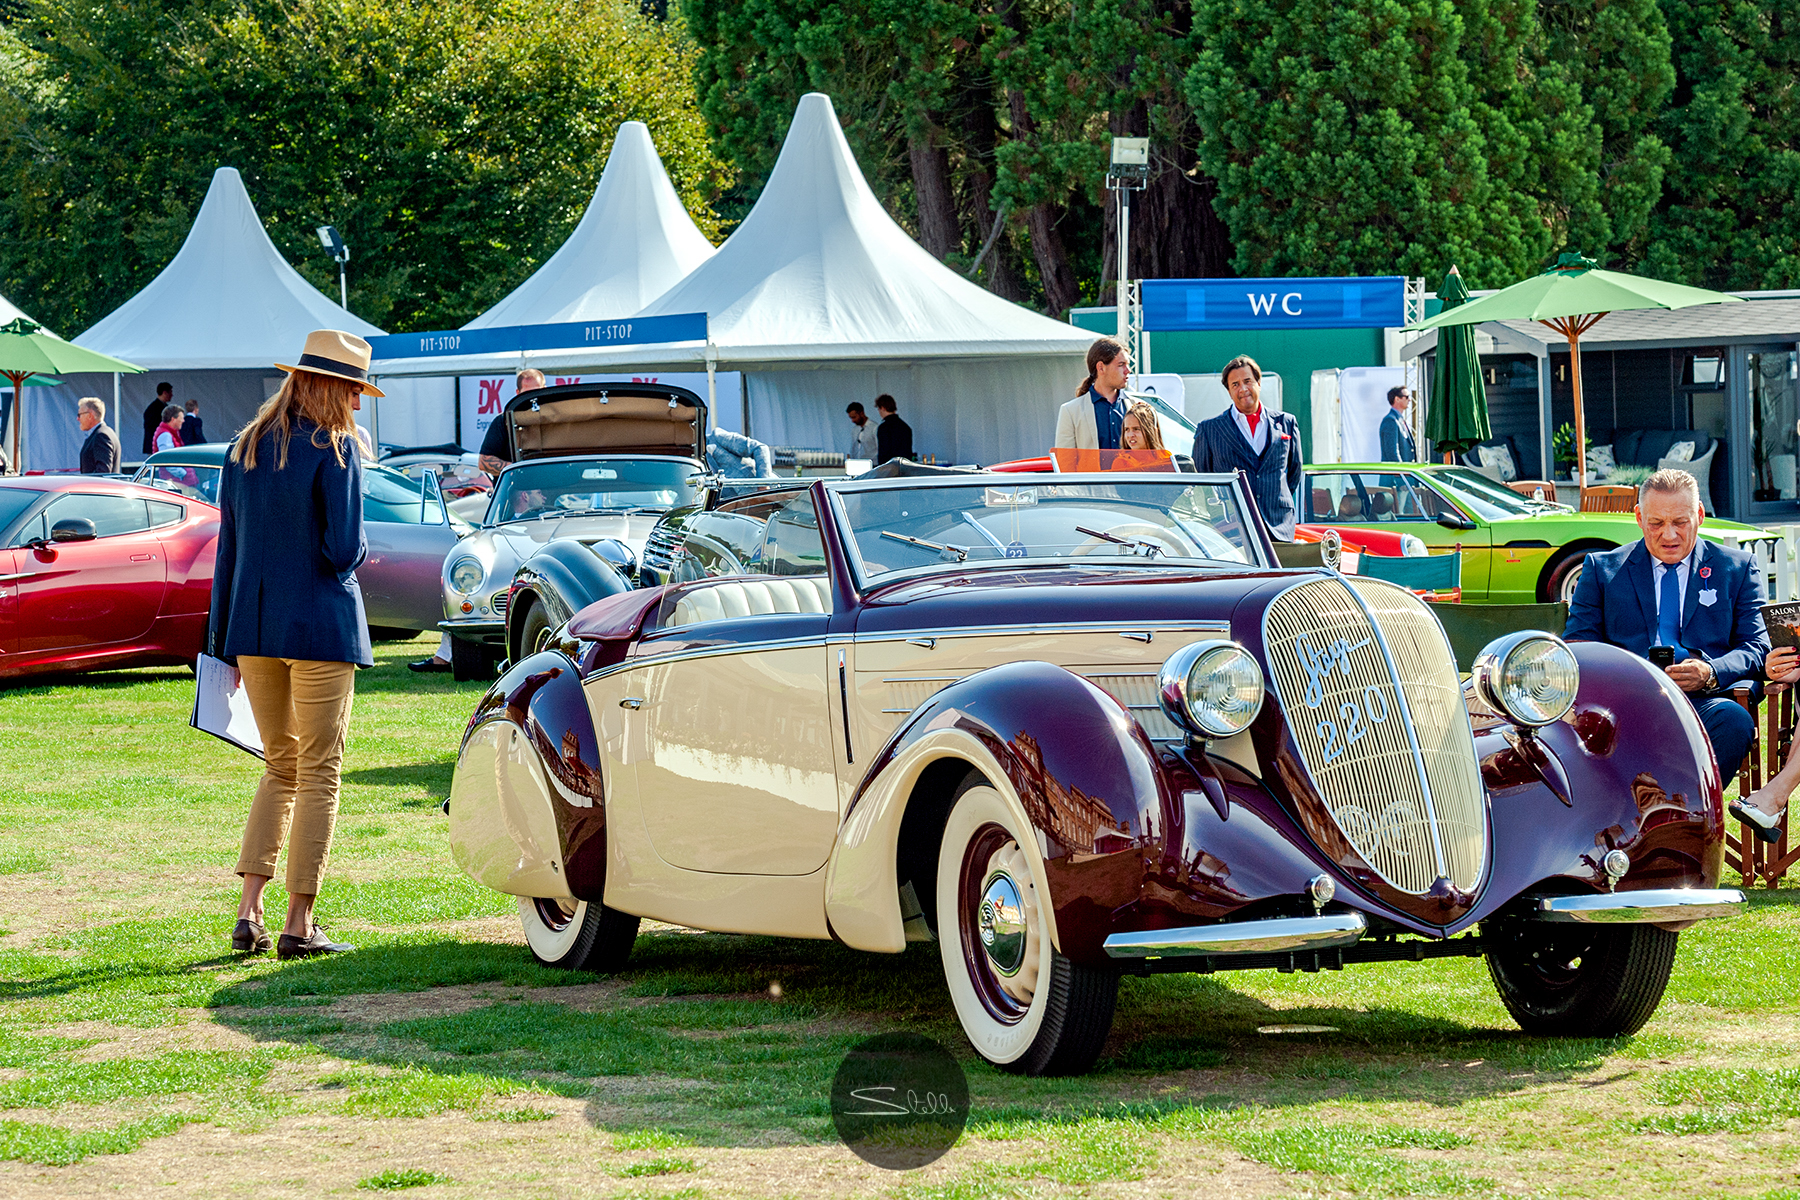 Stella Scordellis Salon Prive 2018 19 Watermarked.jpg